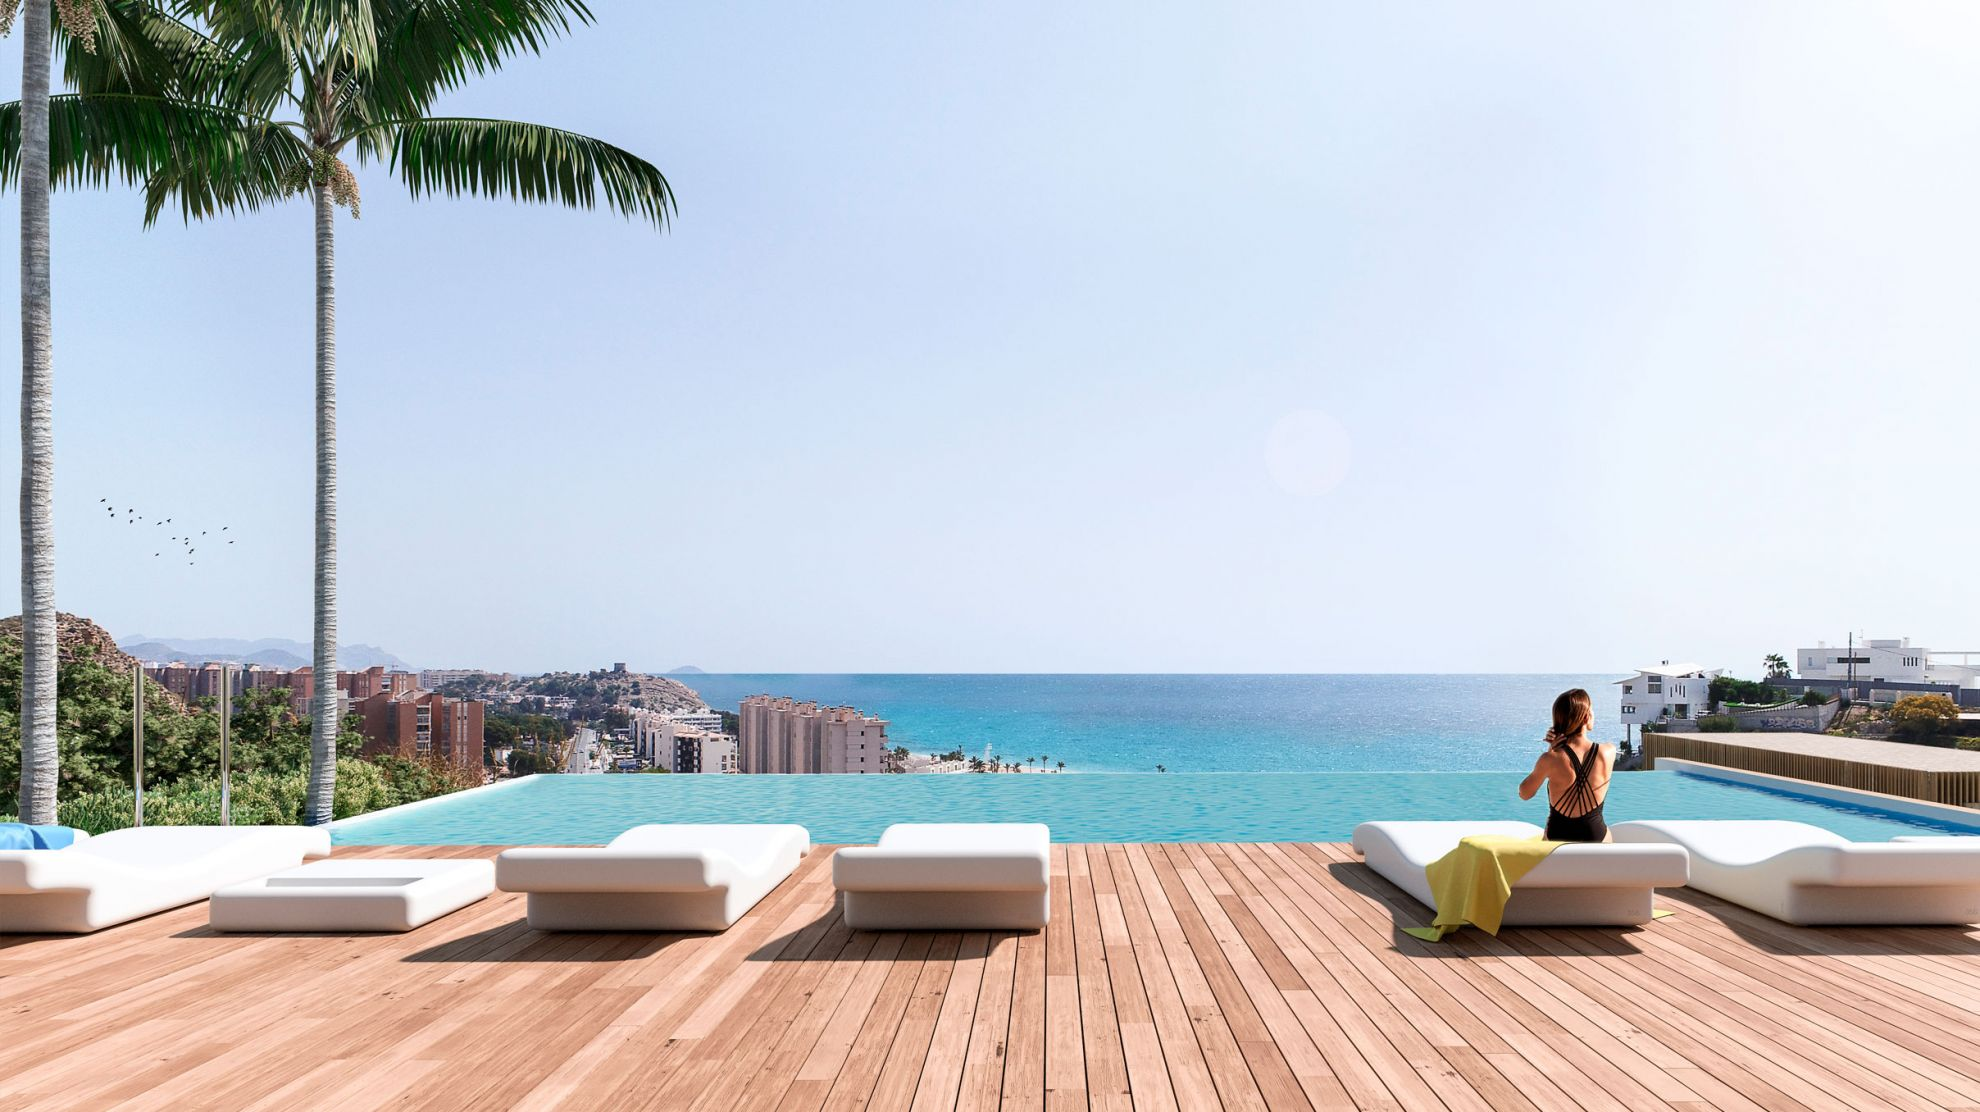 2 and 3 bedroom penthouse-style apartments with big terraces overlookg the sea. House 5 10